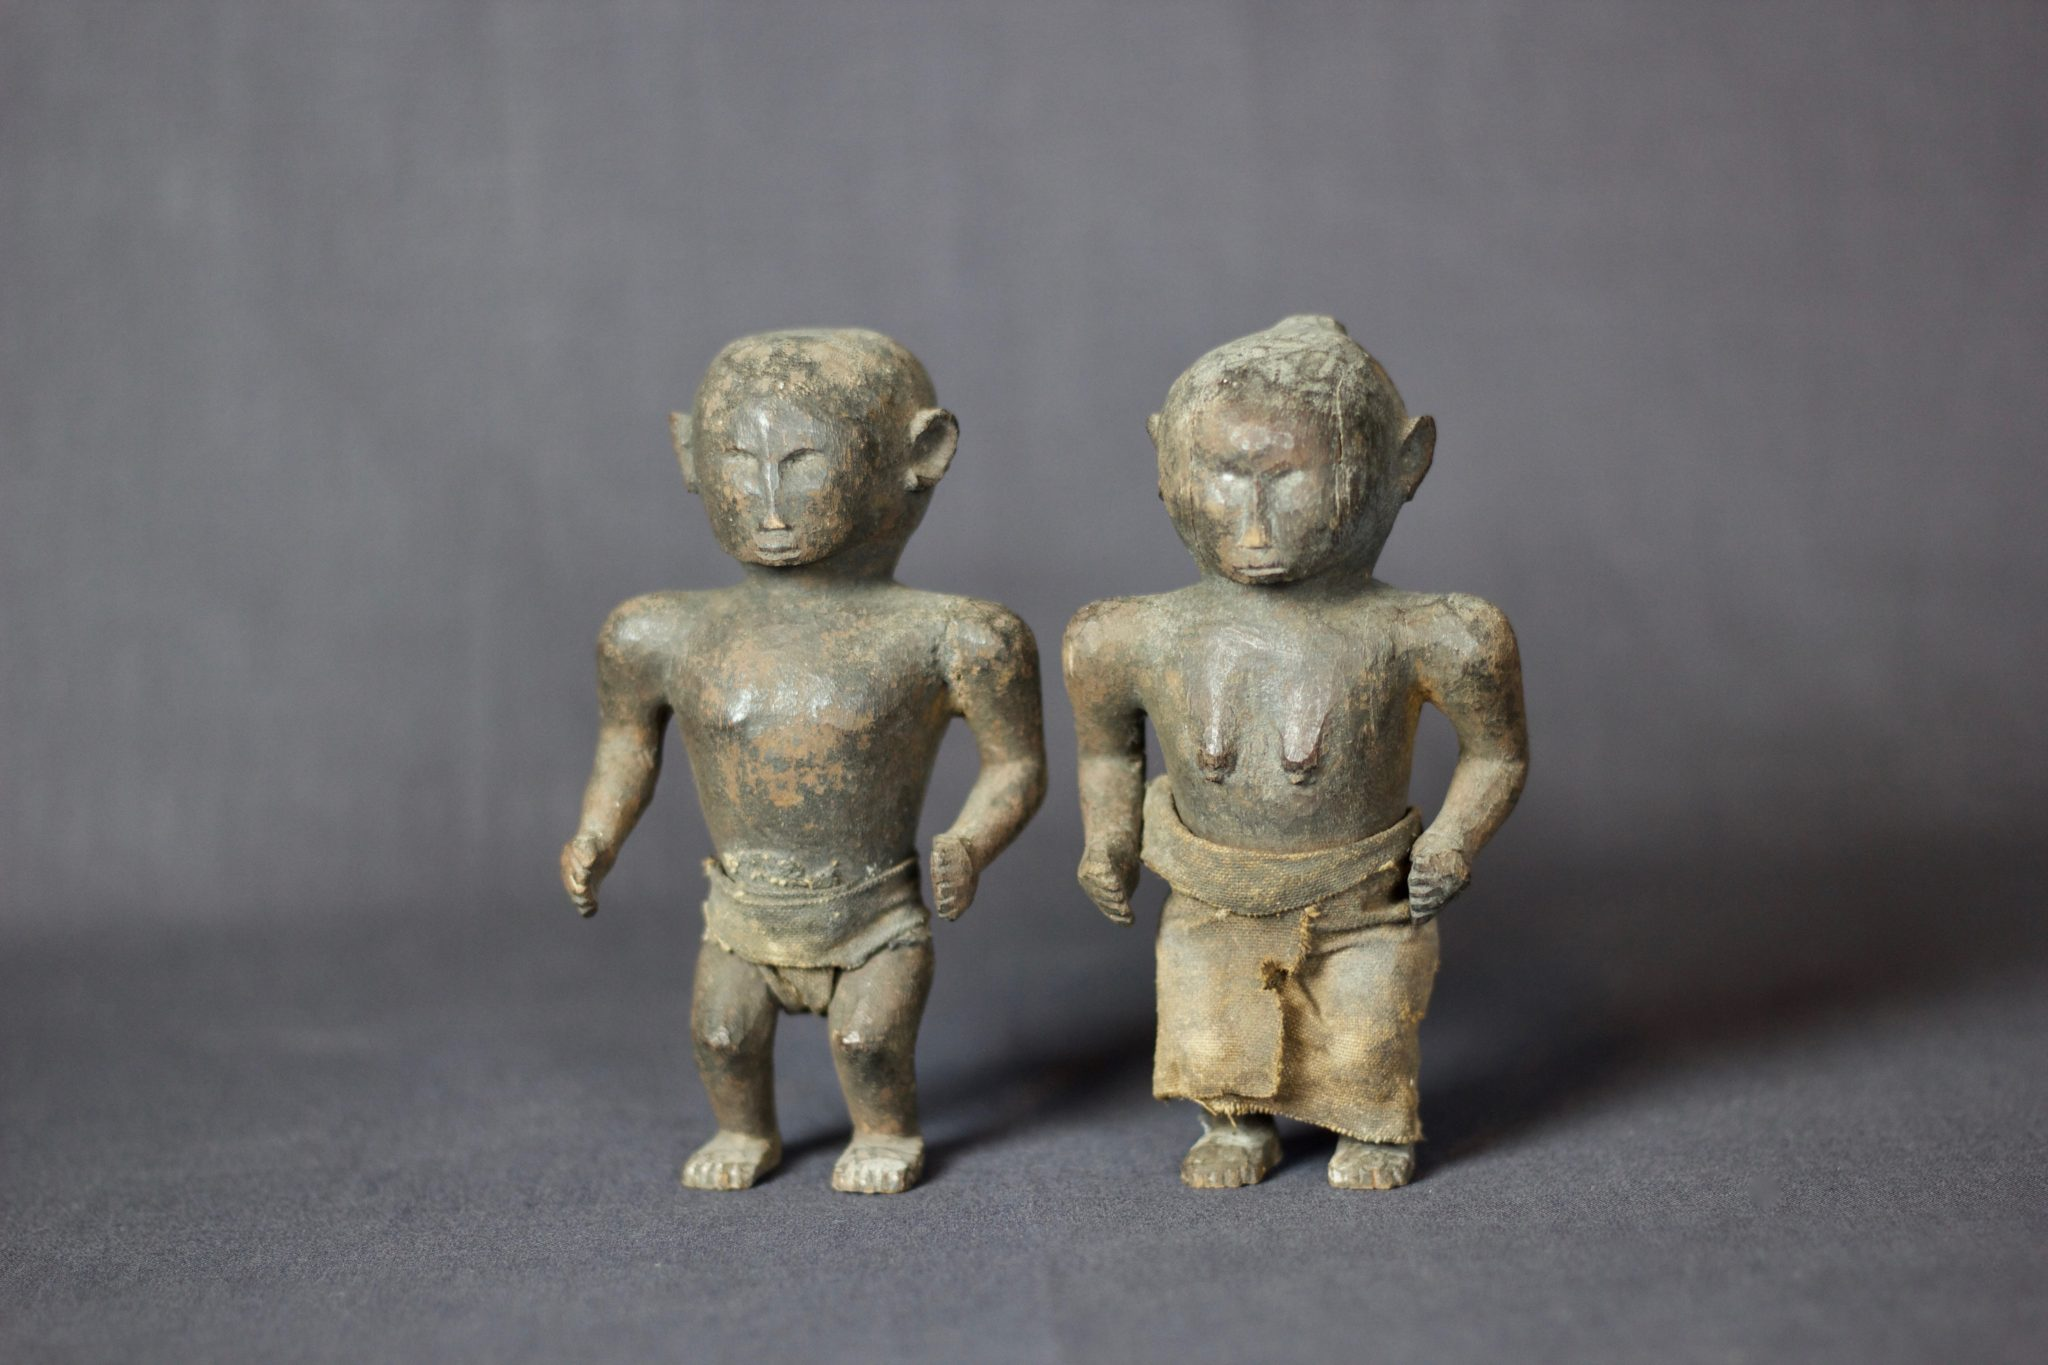 "Shaman Healing Couple Effigy, West Sumba Island, Lesser Sunda Islands, Indonesia, Anakalang village Early to mid 20th c, Wood, fiber cloth, patinated with use and age, Used in healing rituals and to fix marriages. Dimensions: (left, male: 5 ¼"" x 3 ¼"" x 2""); (right, female: 5"" x 3"" x 2""), $420. sold as a pair"